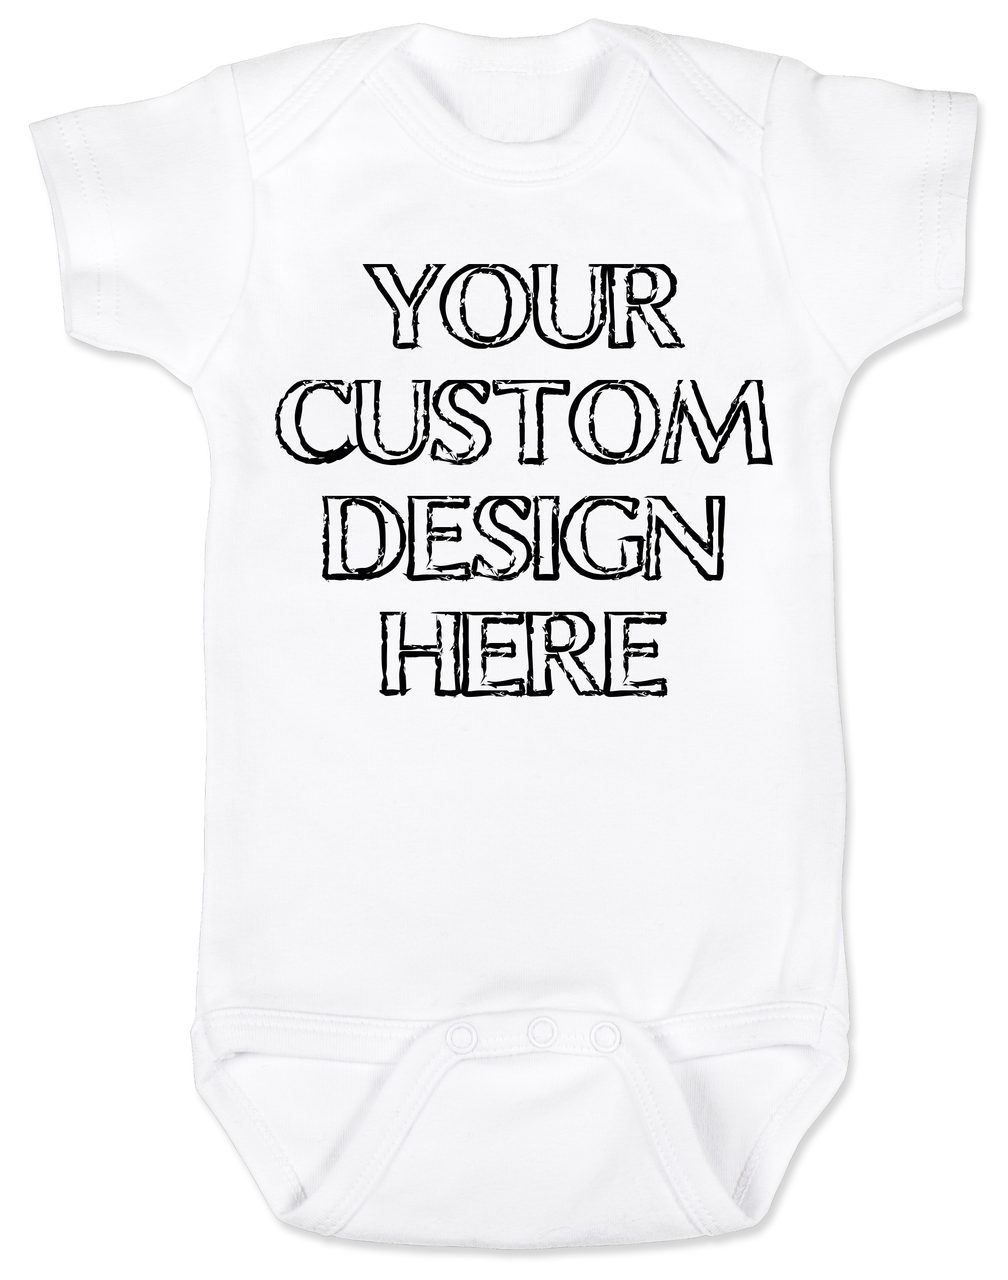 bd3f7d5e9daf8 Make Your Own Custom Baby Bodysuit